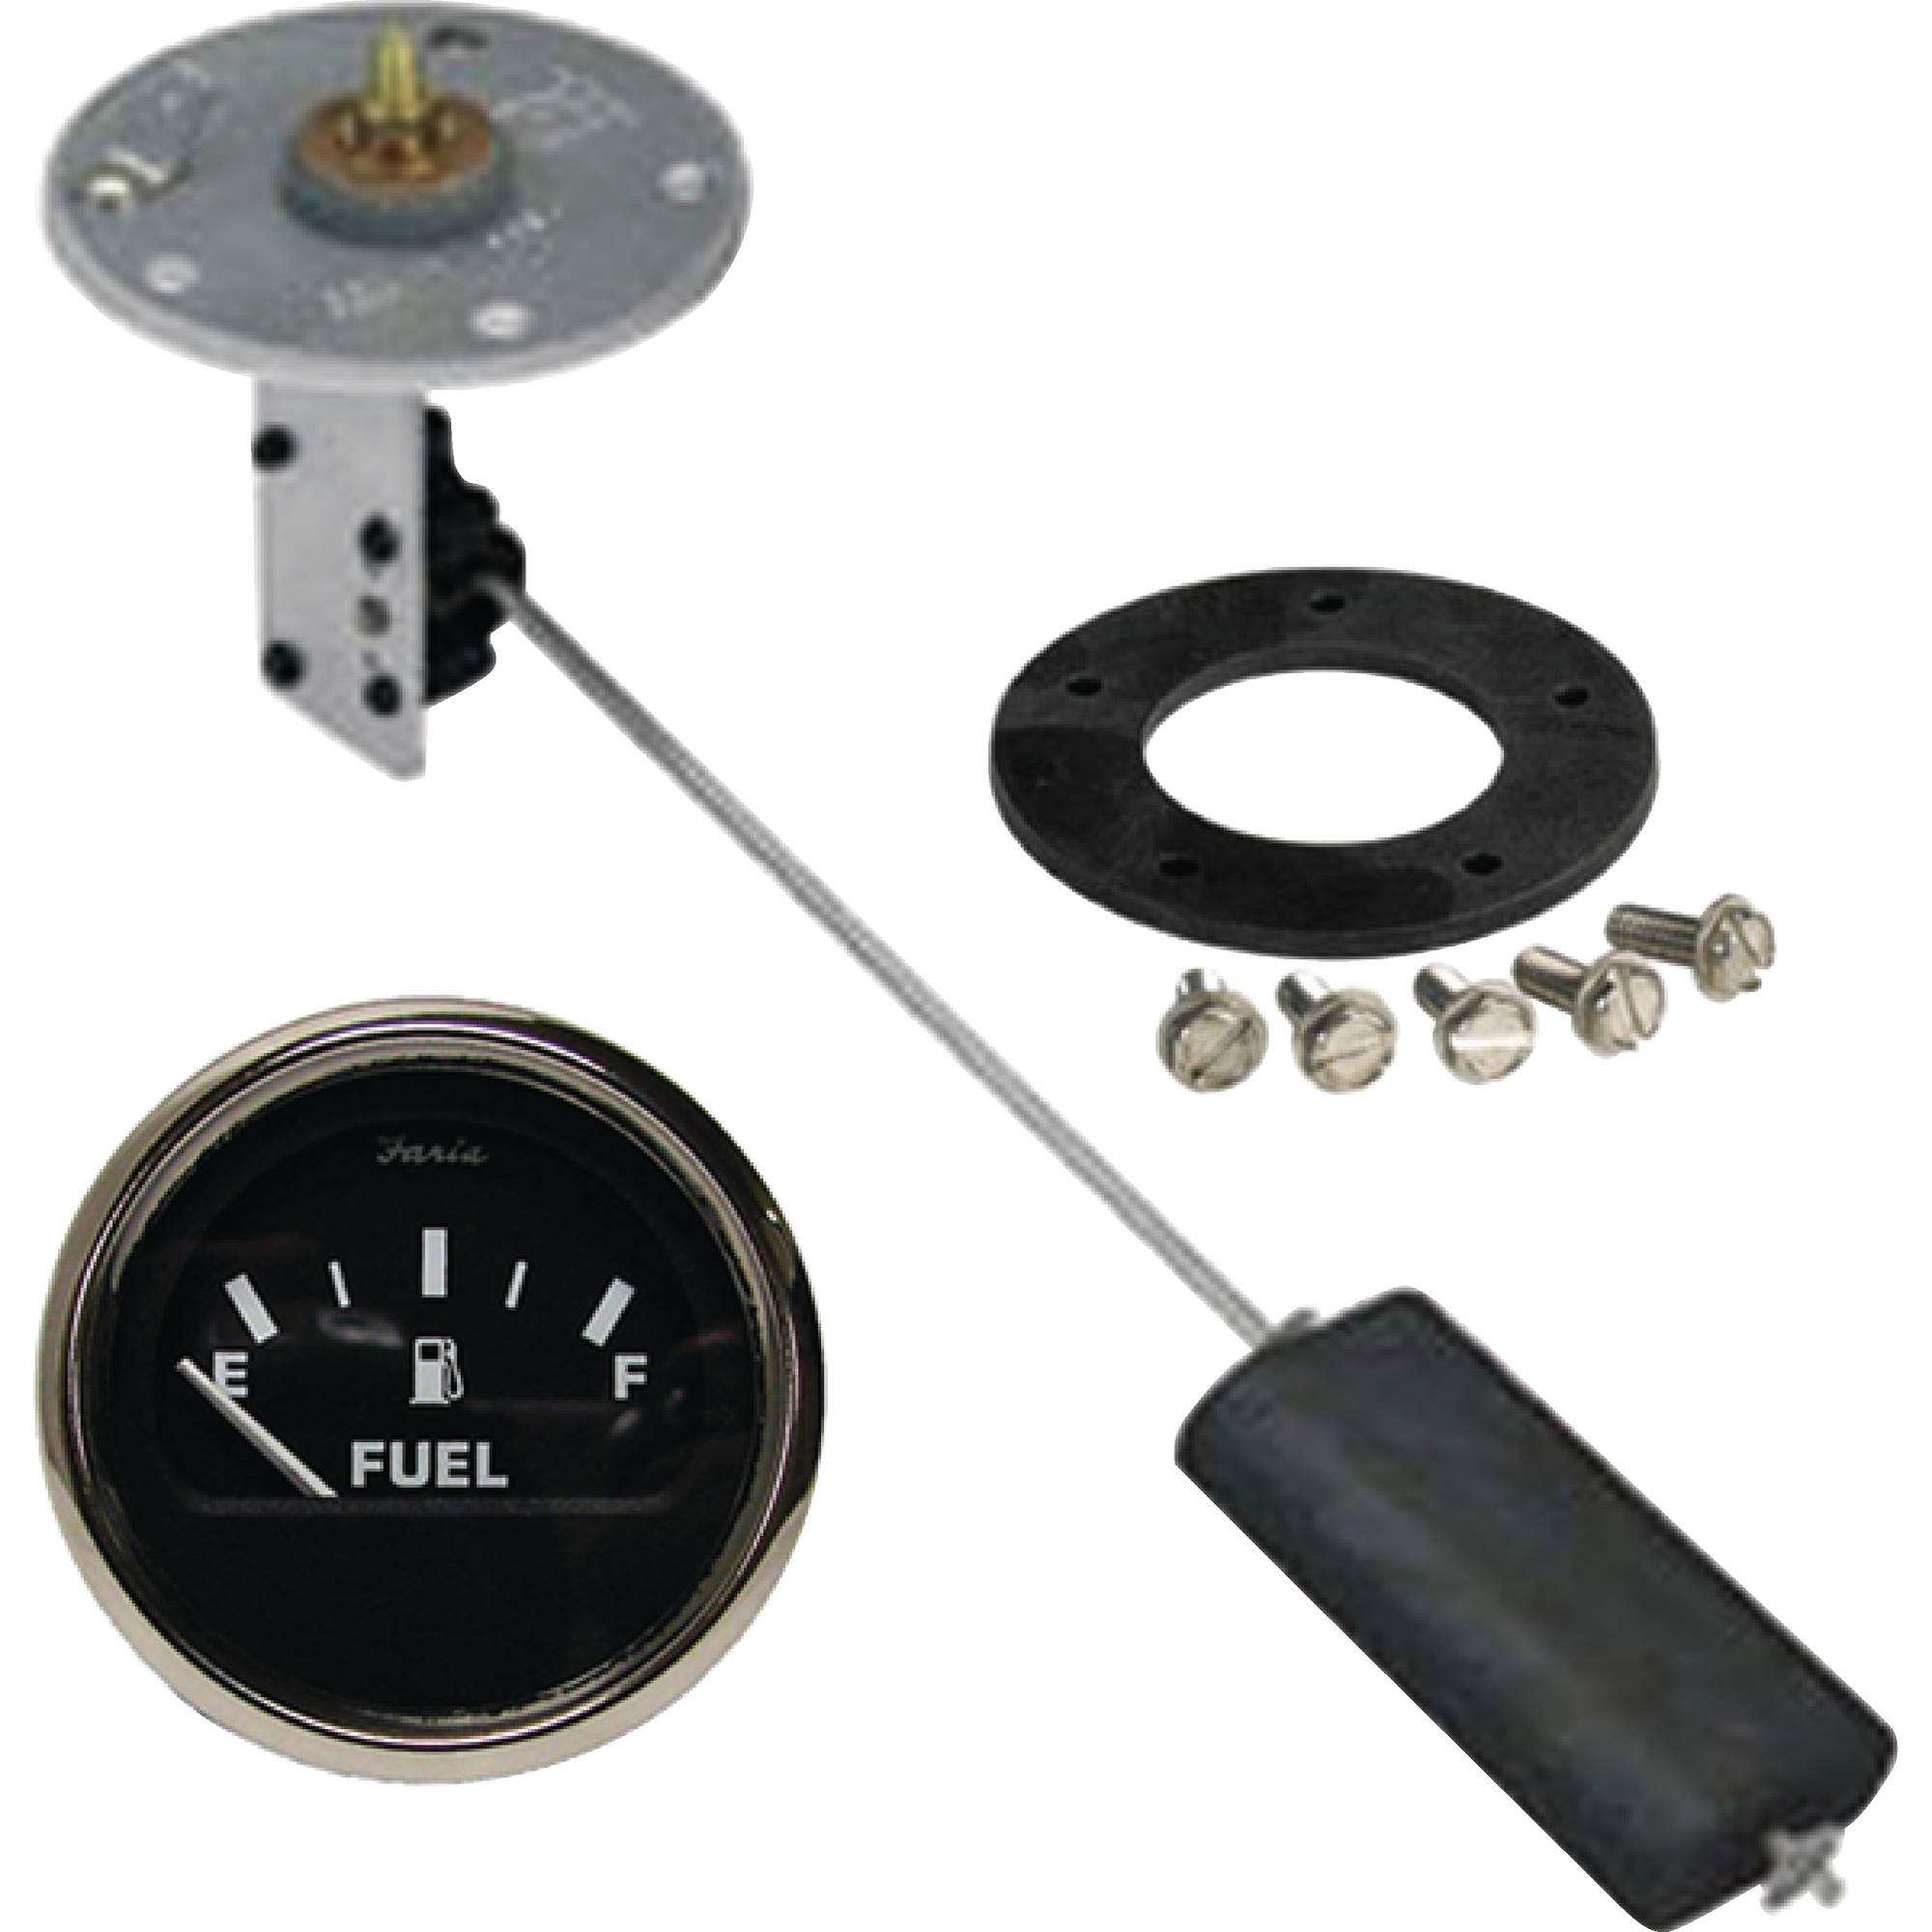 "Moeller Swingarm Electric Sending Unit Complete Kit with Dash Mounted Gauge for 4"" to 28"" Tank Depth"